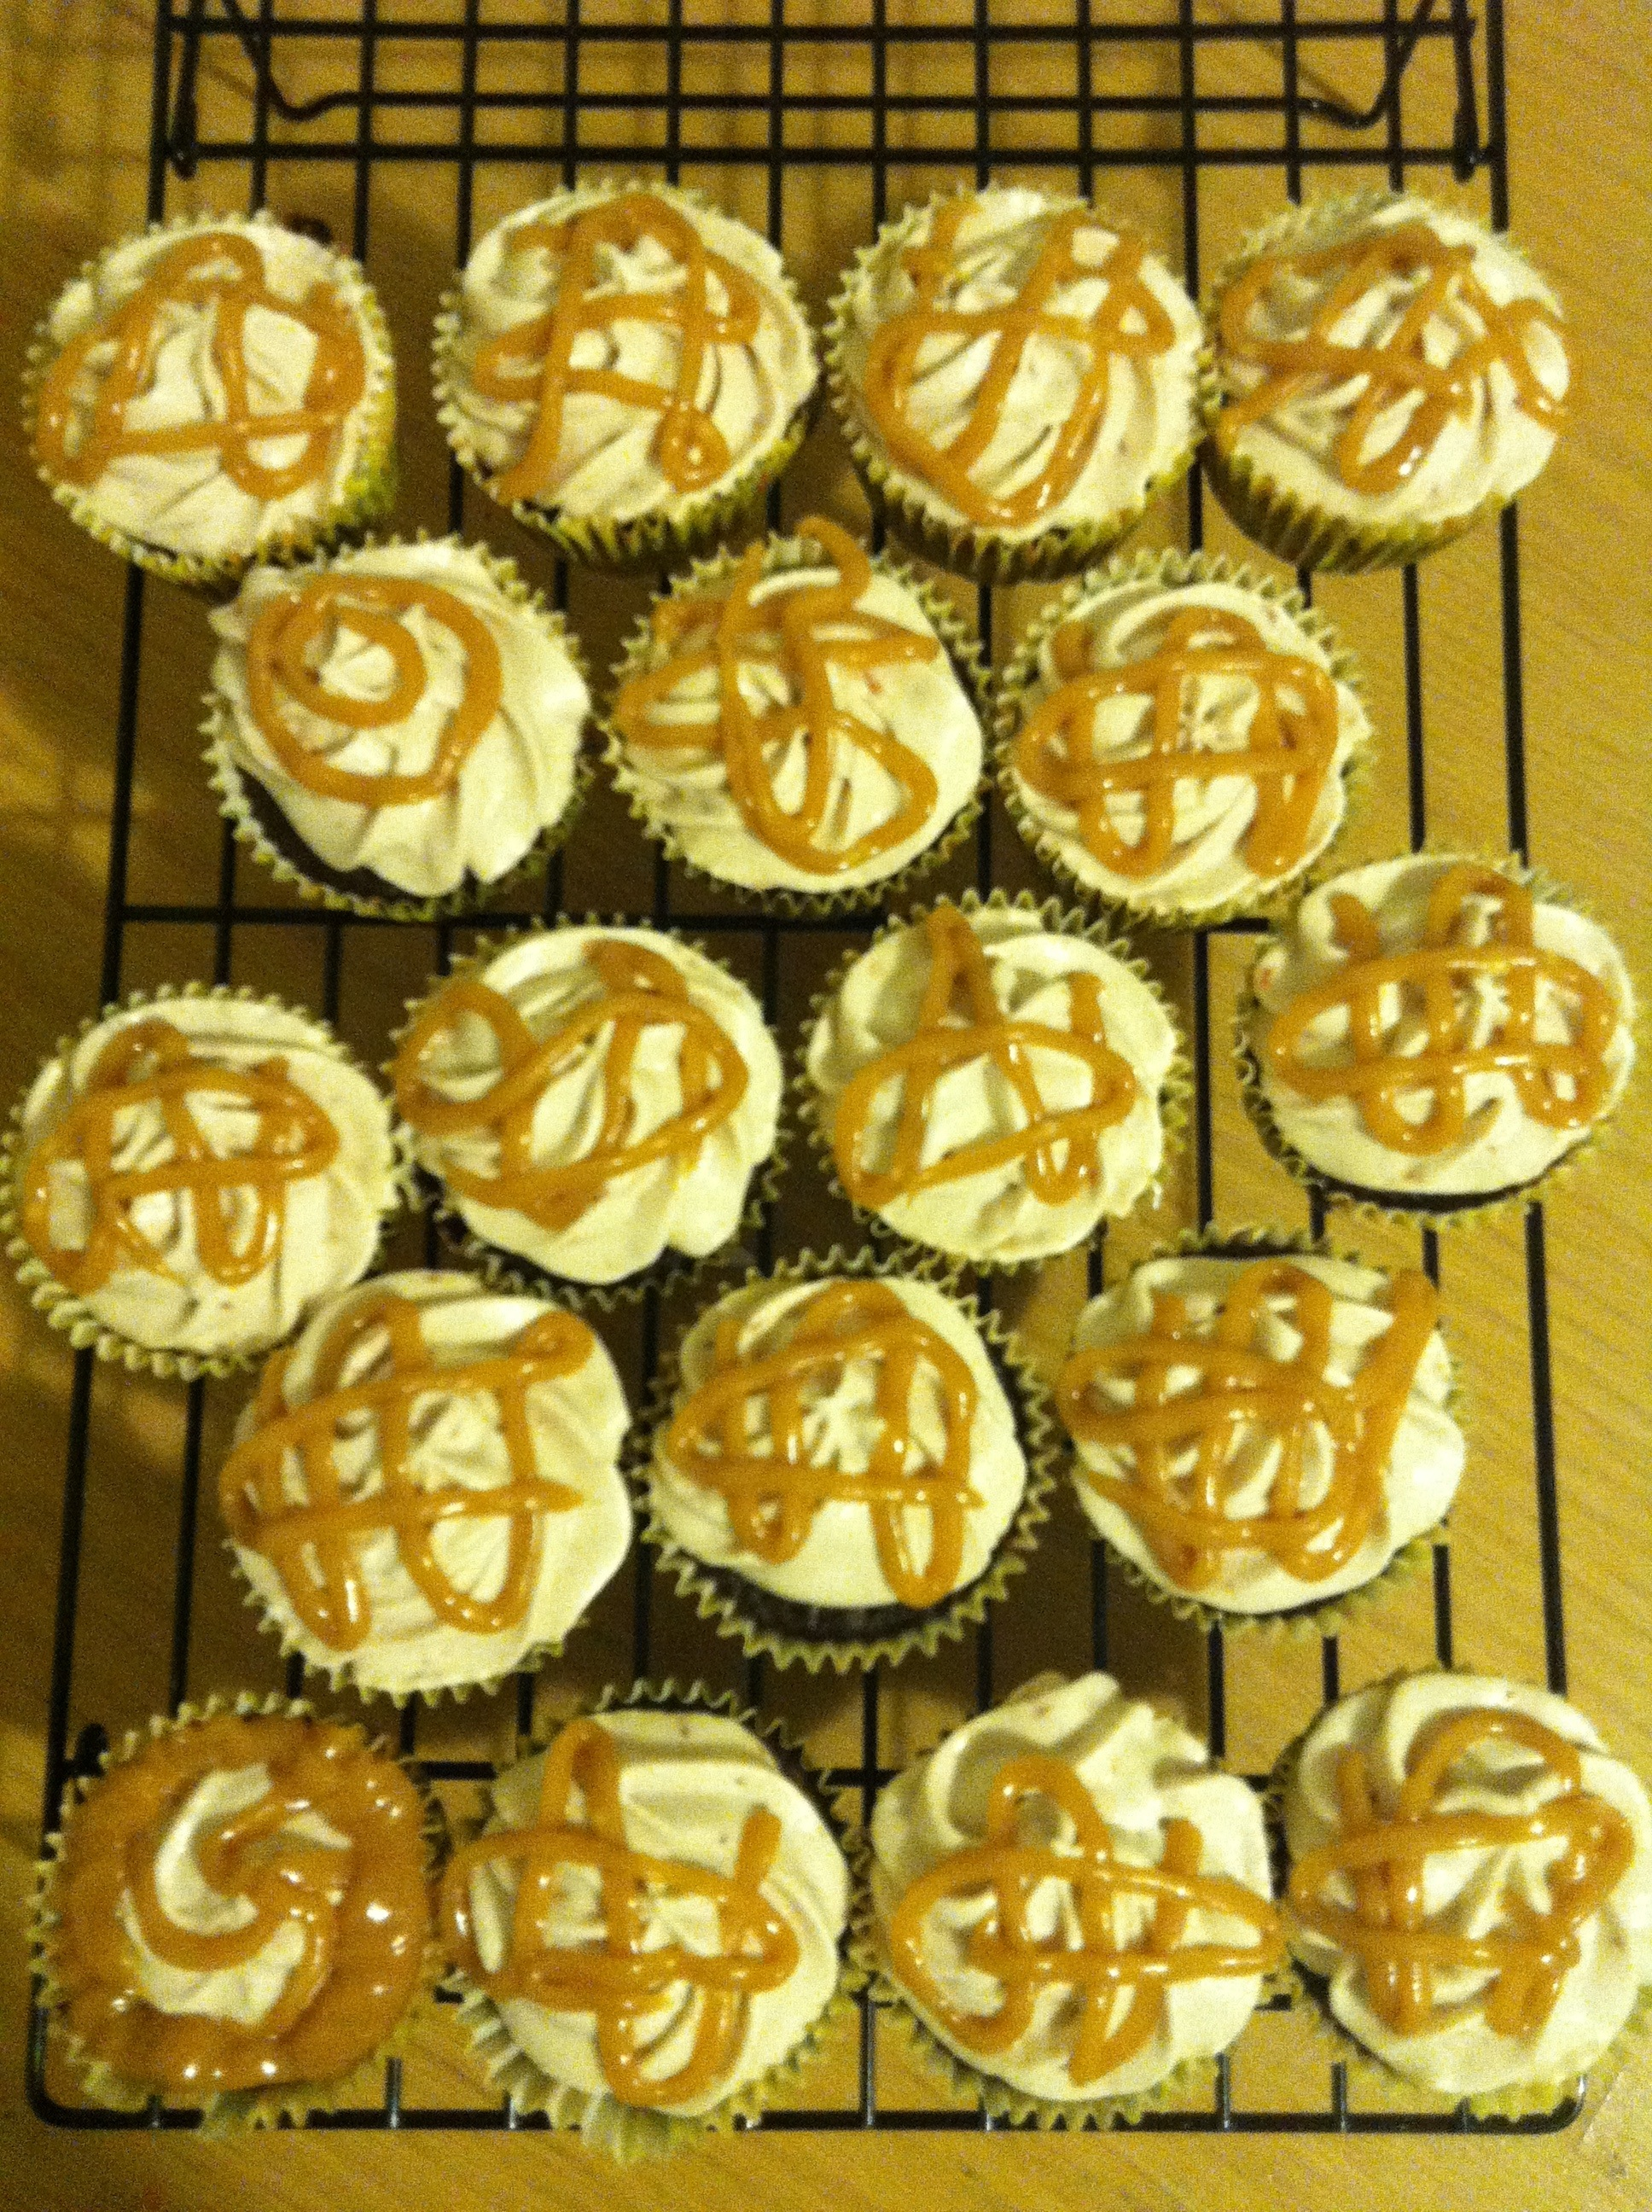 Chocolate Cupcakes with Strawberry Jam Buttercream and Peanut Butter Drizzle